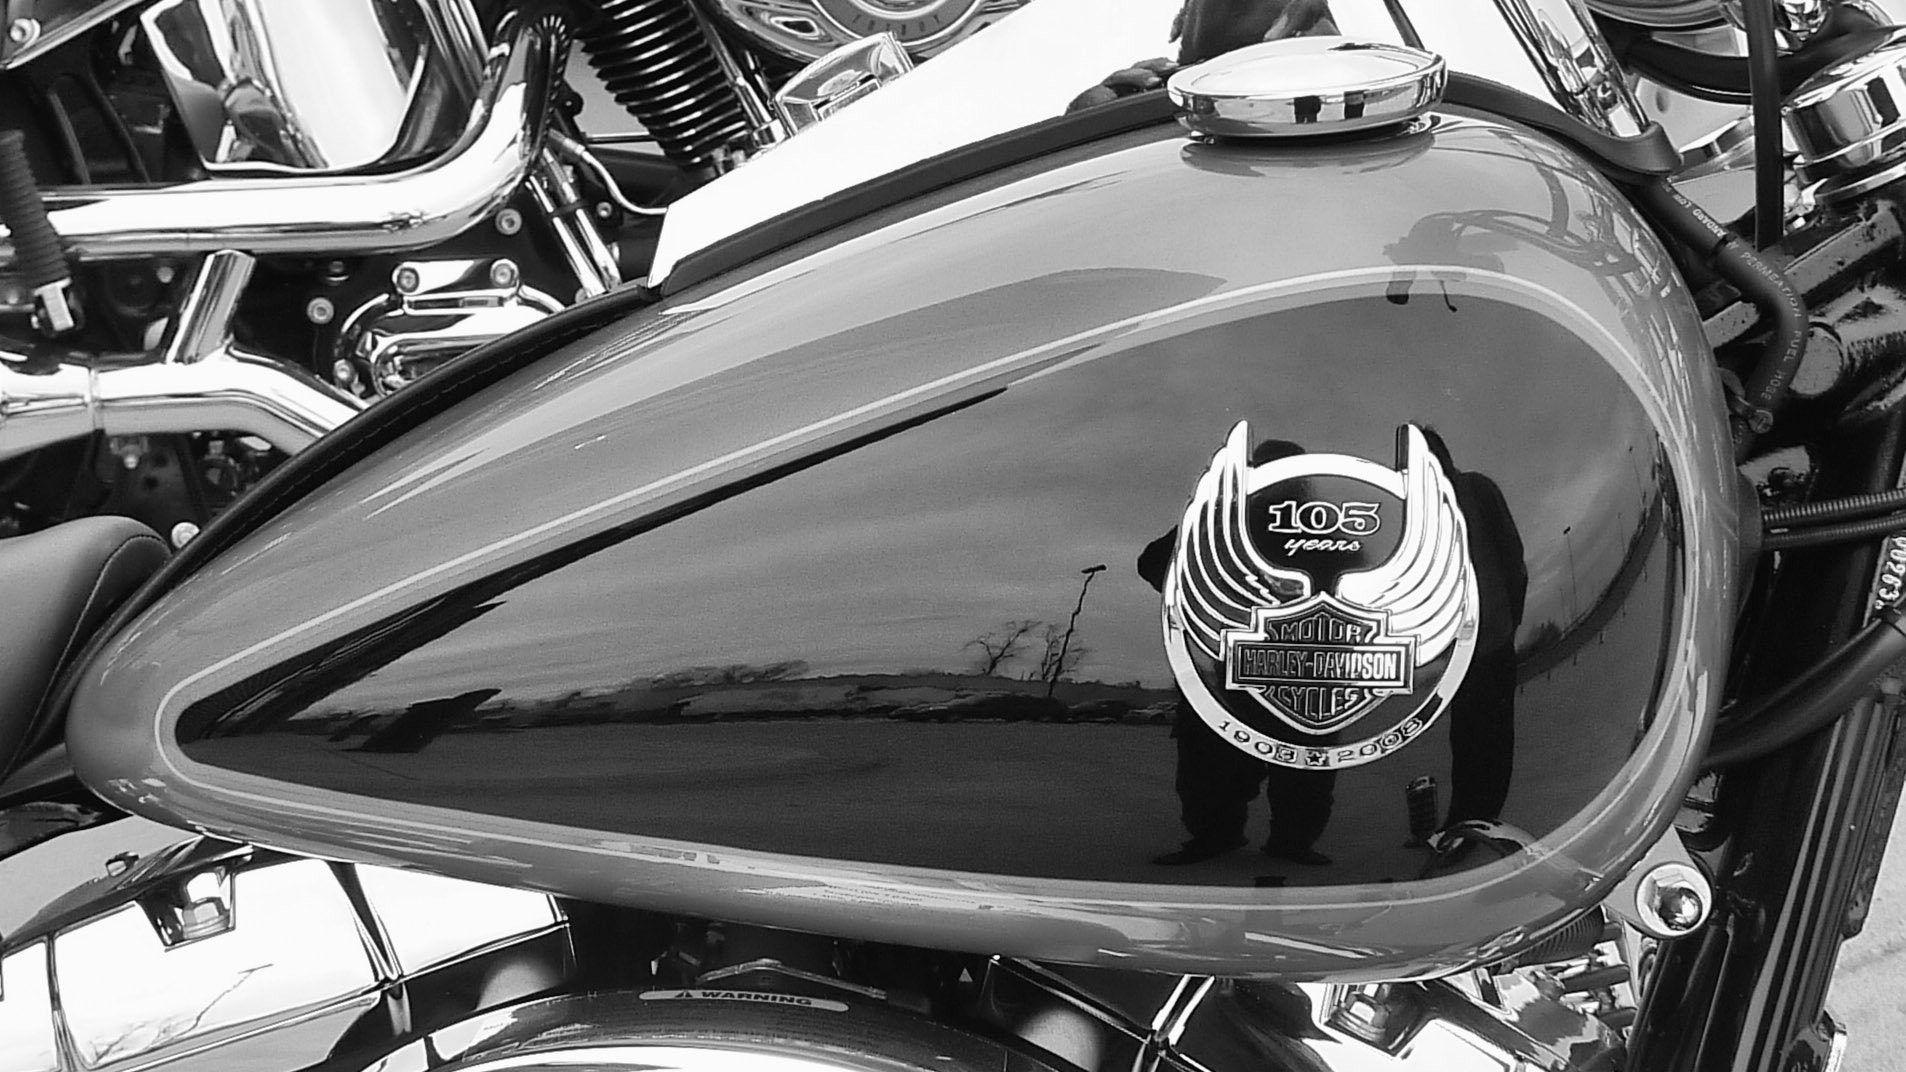 Photograph Harley (Reflection) by Sunil Mehta on 500px